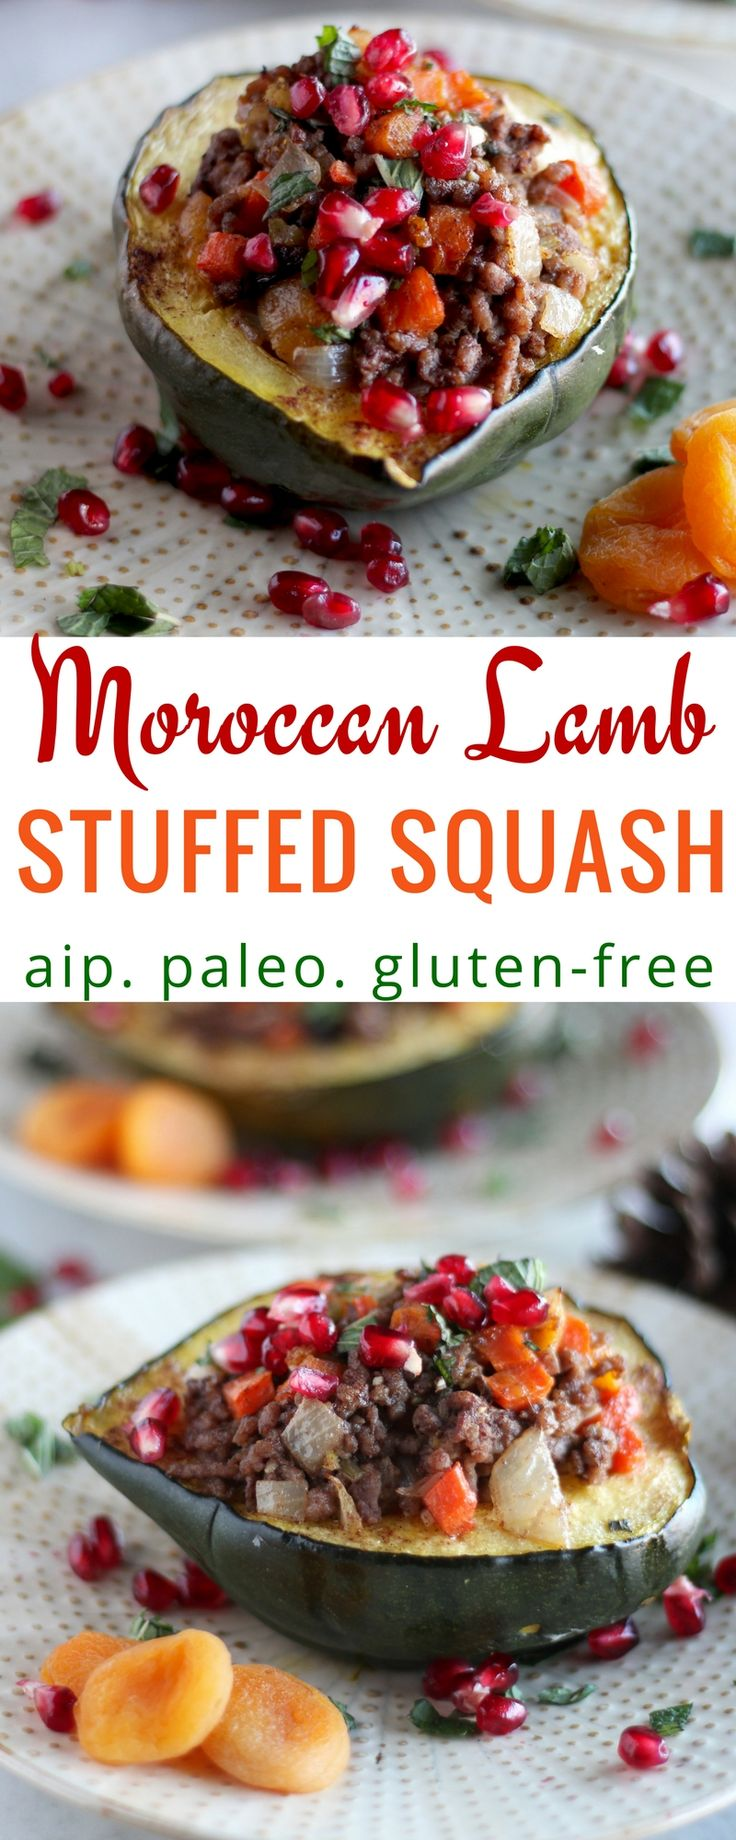 Paleo Moroccan Lamb Stuffed Squash (AIP) - This grain-free, AIP meal features acorn squash, grass-fed ground lamb, and a blend of veggies, fresh mint, dried fruit, cinnamon, and juicy pomegranate seeds for an exotic Moroccan feel. | fedandfulfilled.com